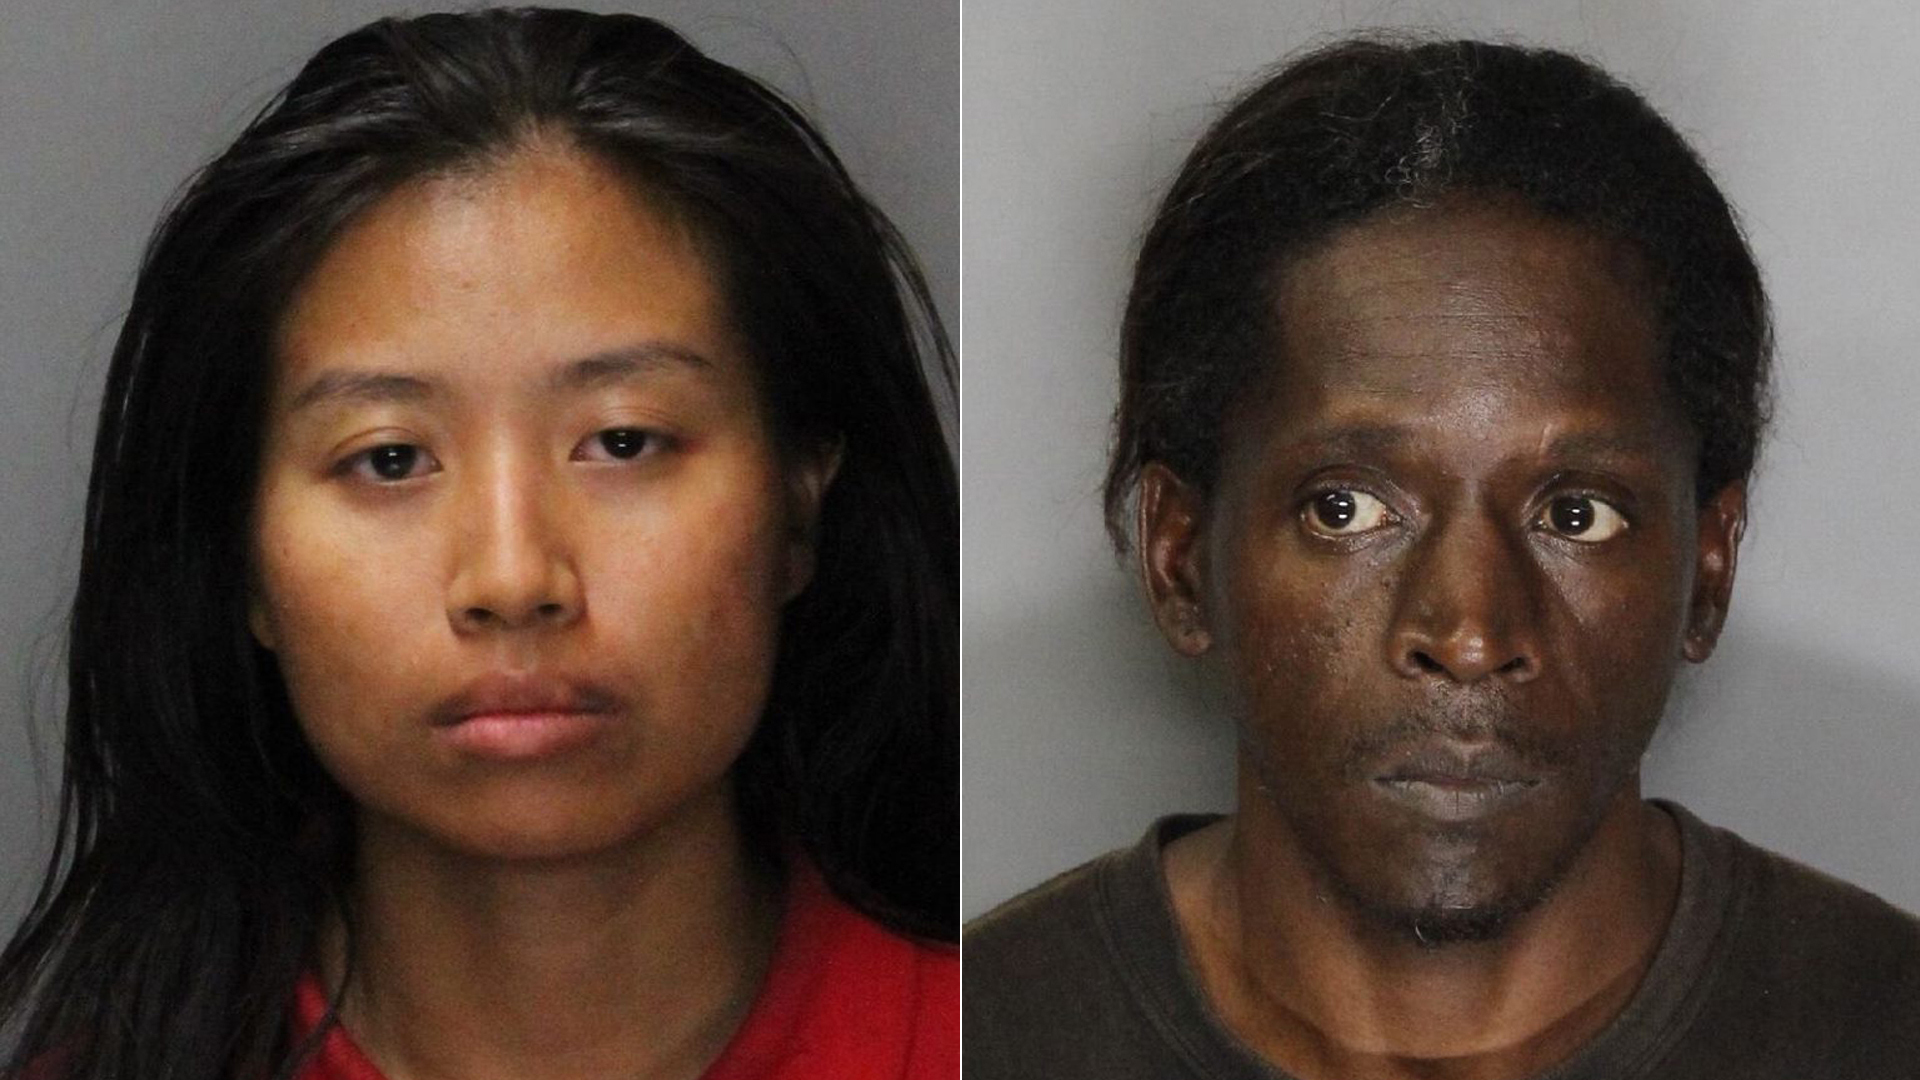 Angela Phakhin, left, and Untwan Smith, right, are seen in booking photos released by Rancho Cordova police.